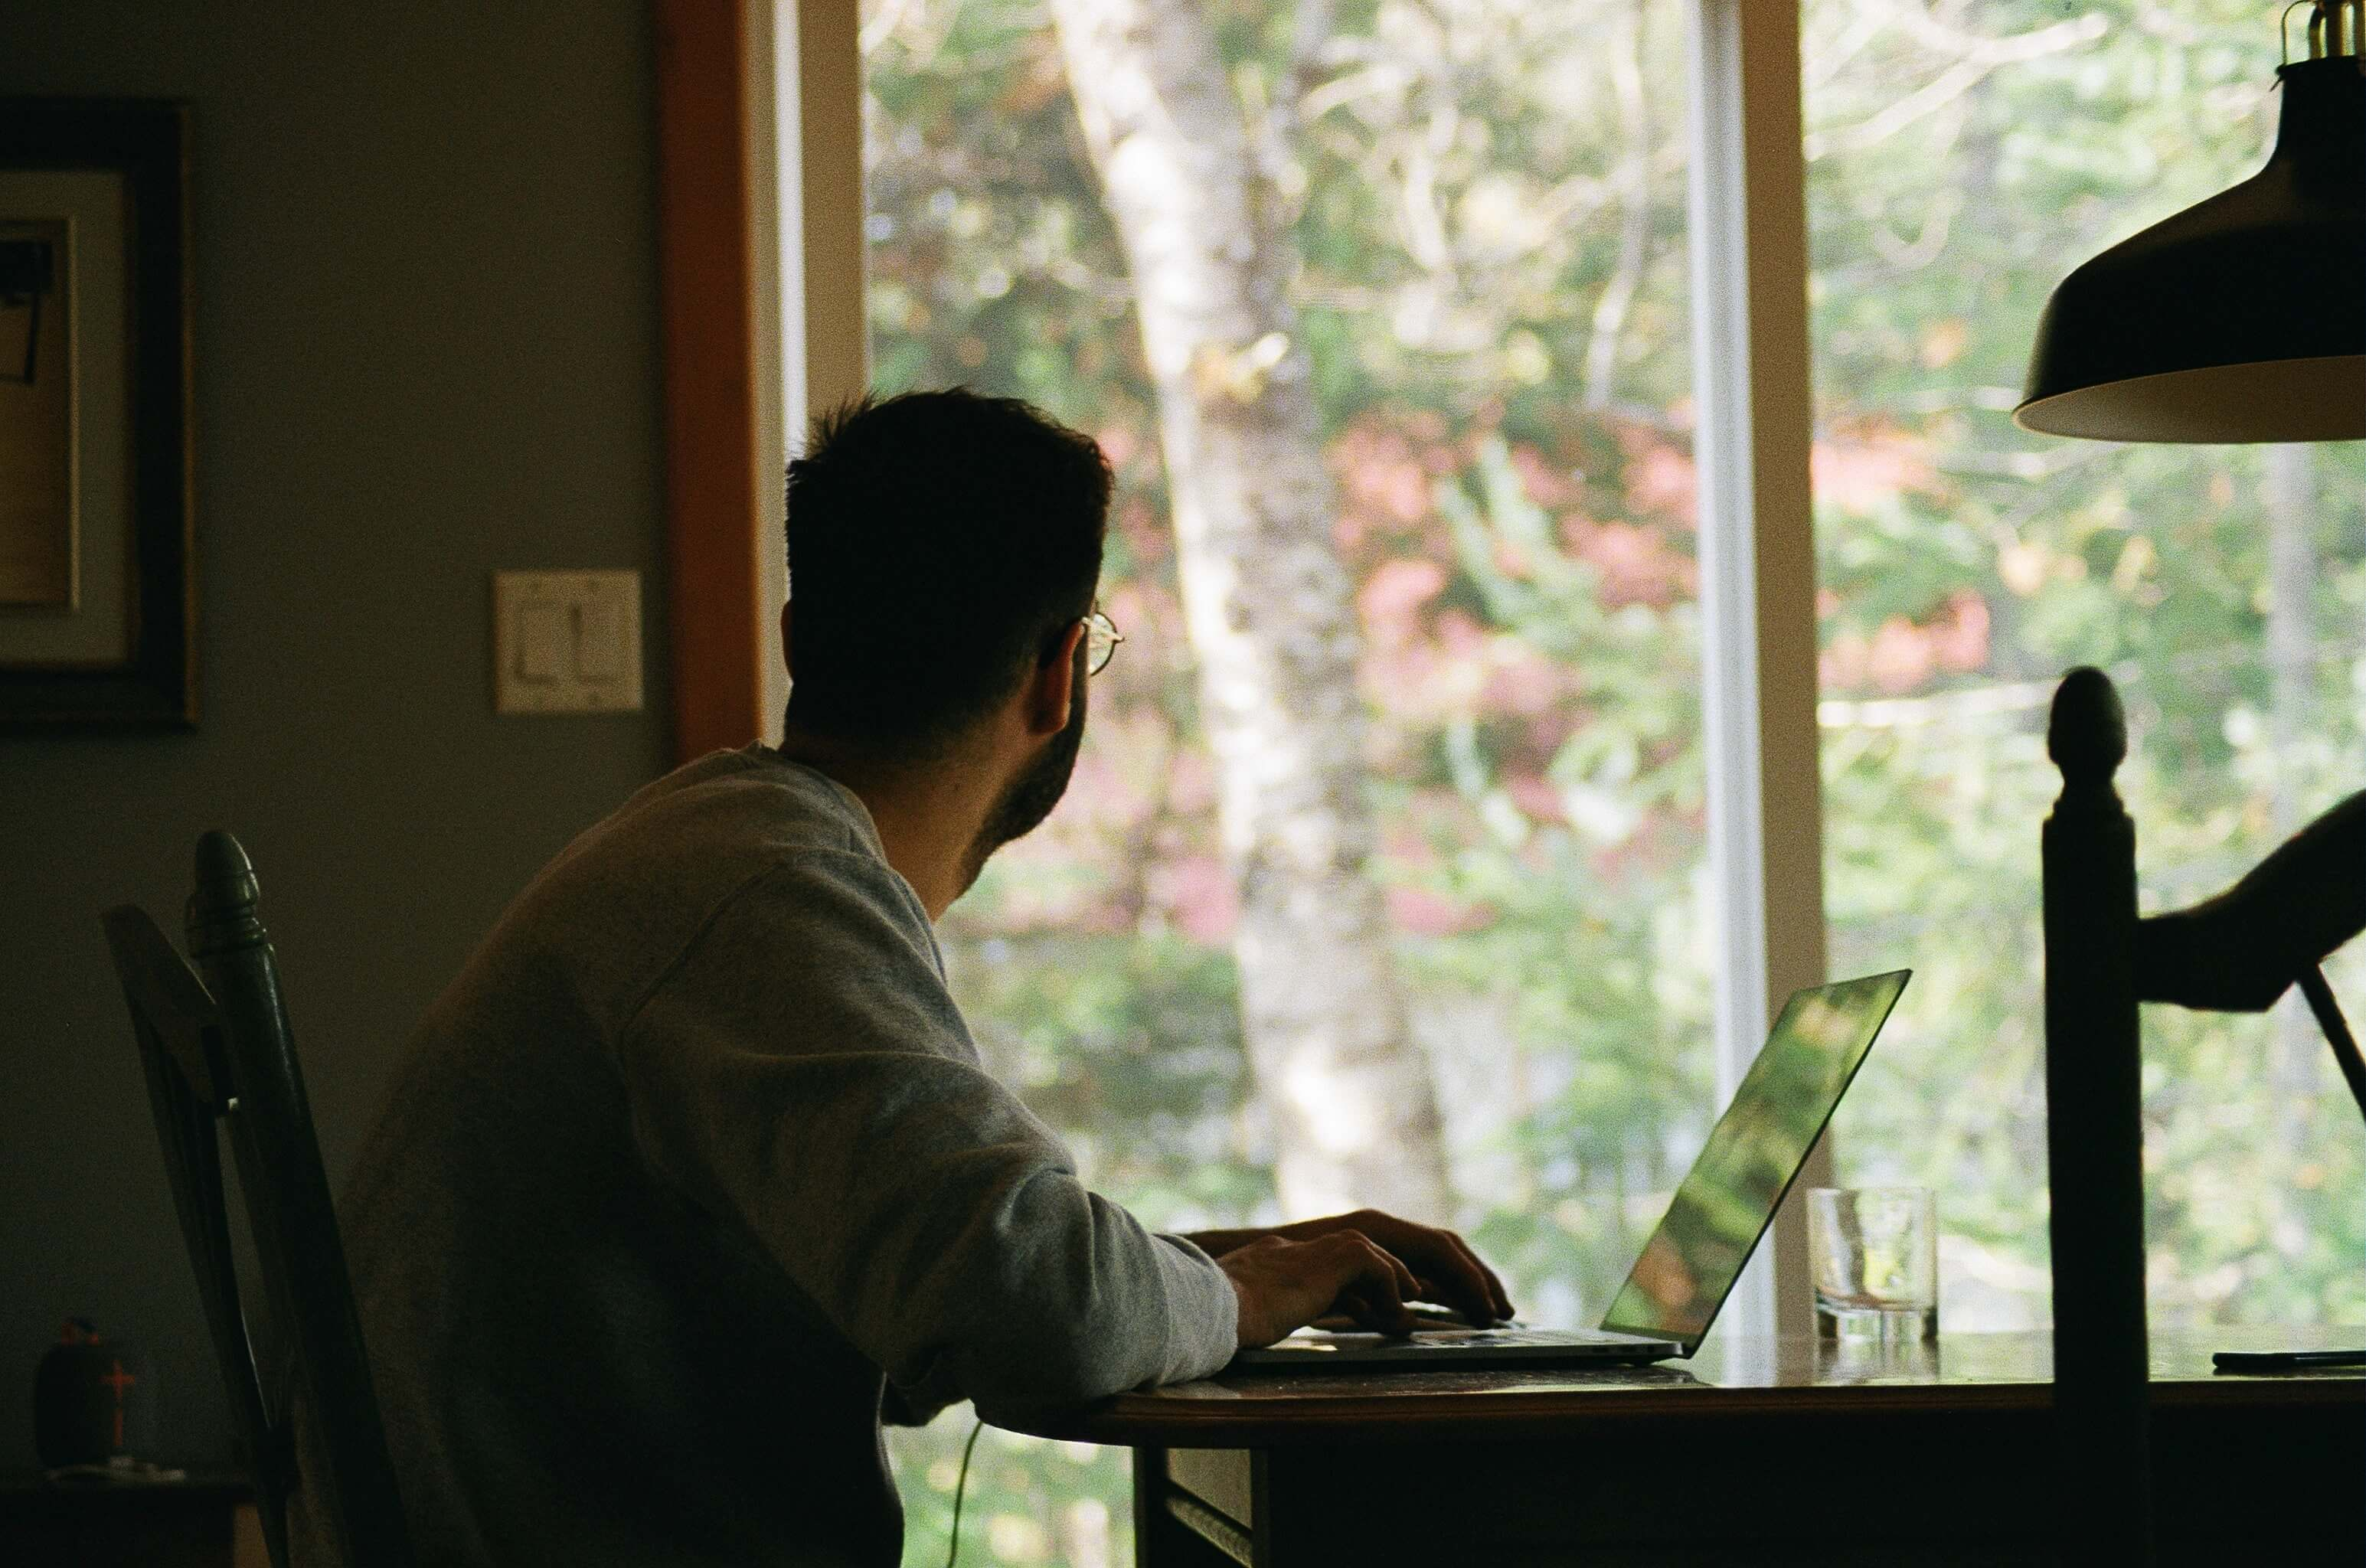 Remote Work and the Video Game Industry